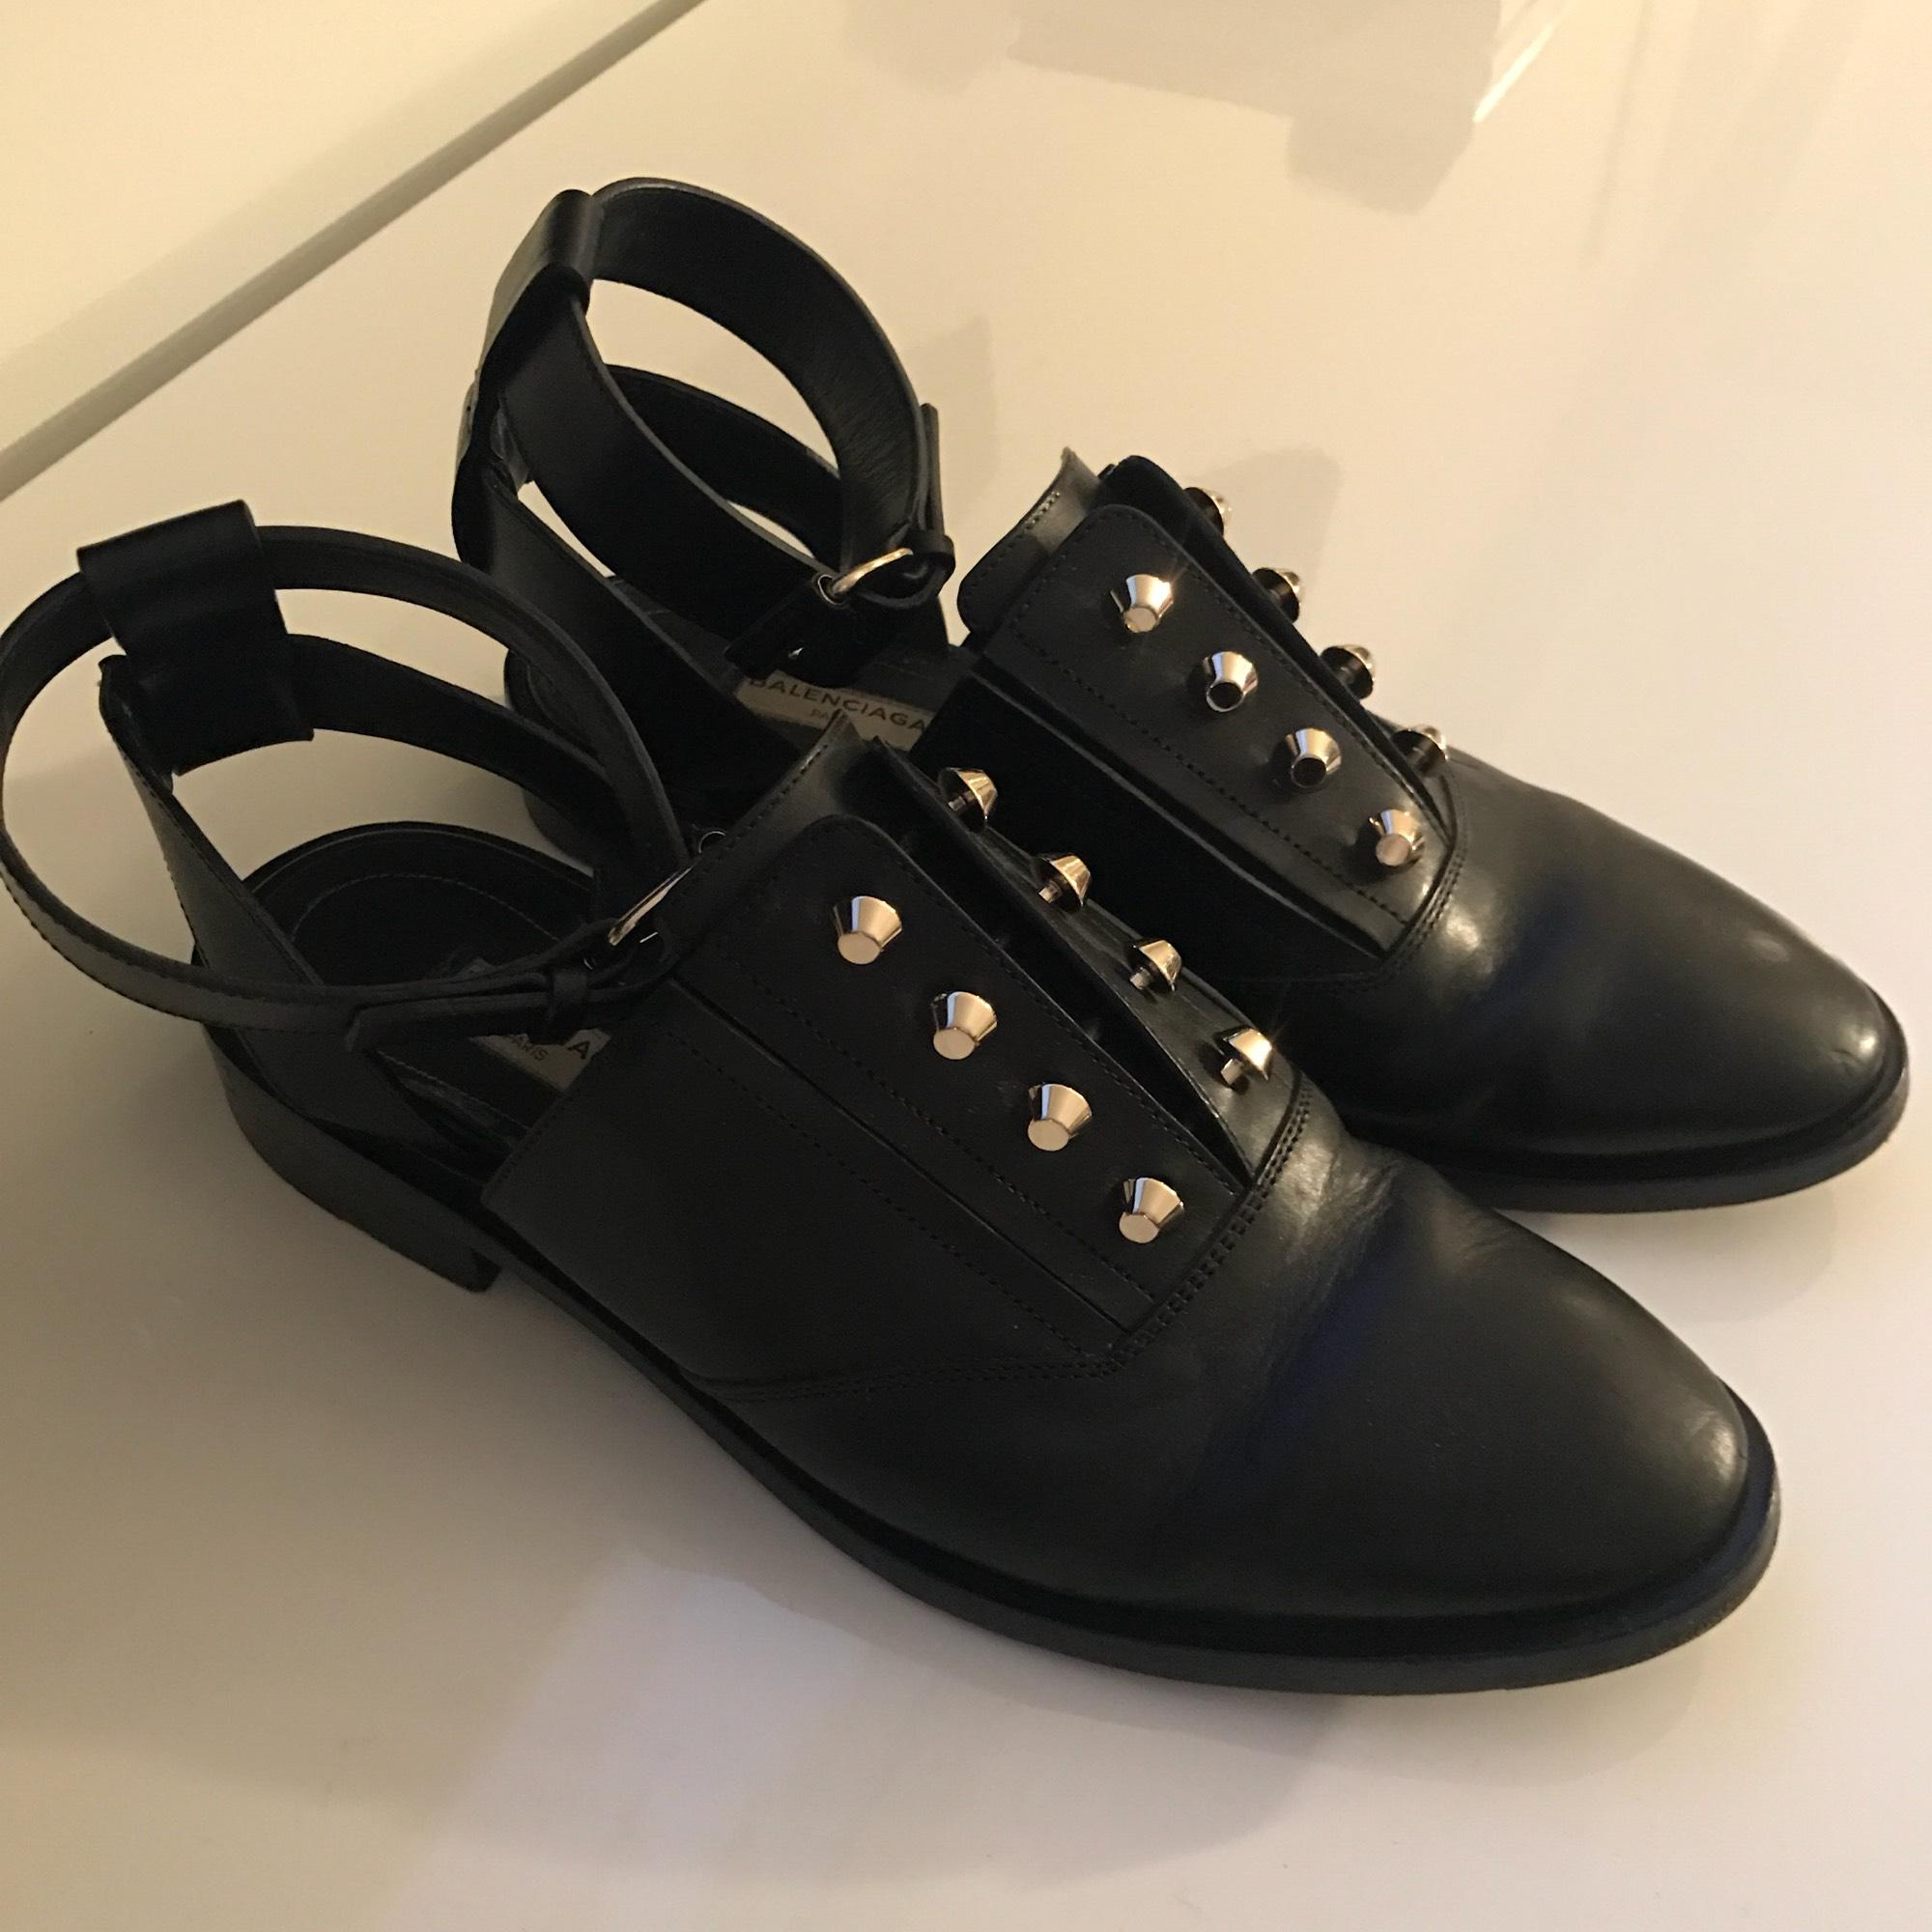 Balenciaga Embellished Leather Oxfords w/ Tags looking for authentic cheap price 6vQqc6BP5